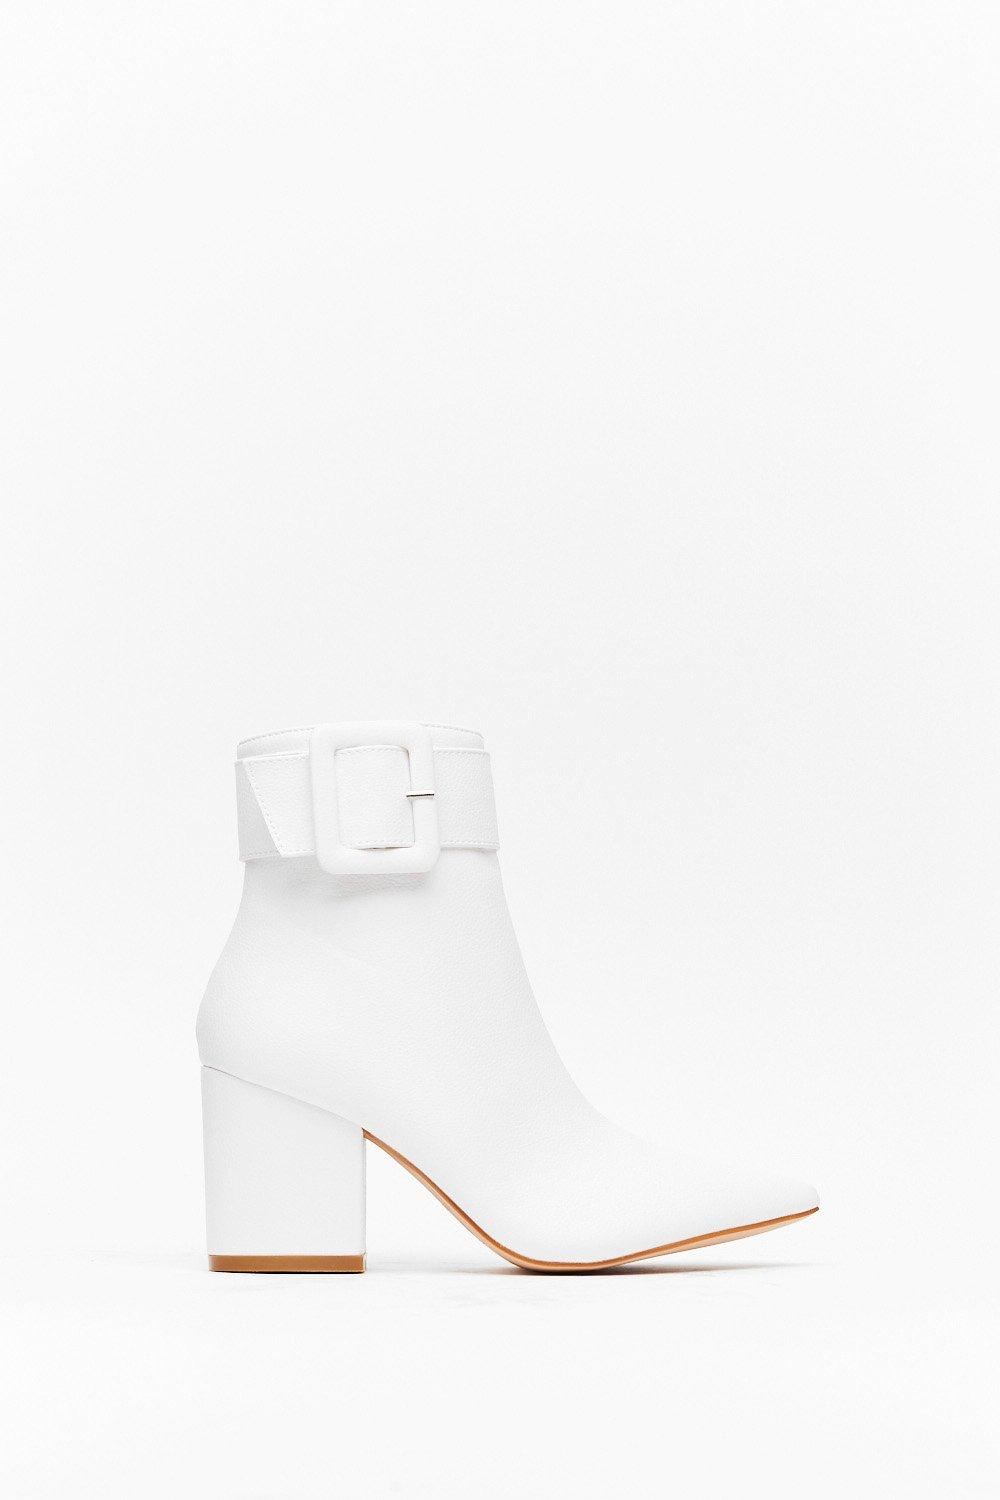 Image of Buckle It Up Faux Leather Pointed Boot